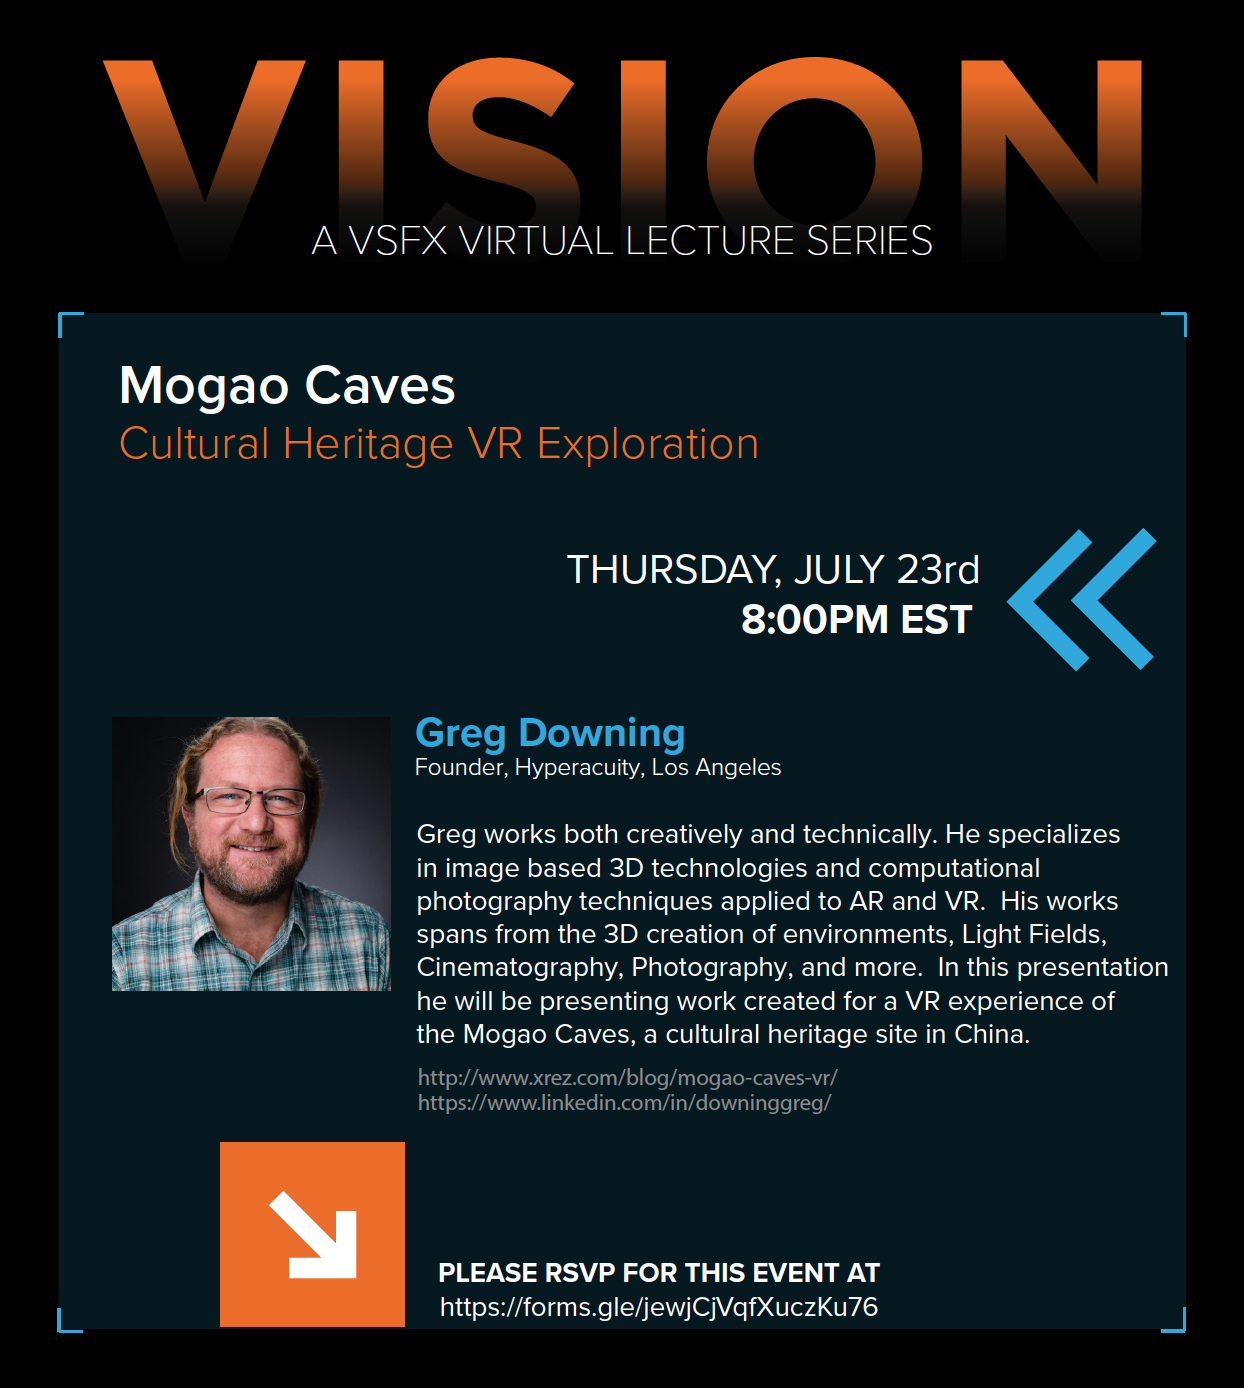 VISION A VSFX Virtual Lecture Series Presents – Greg Downing